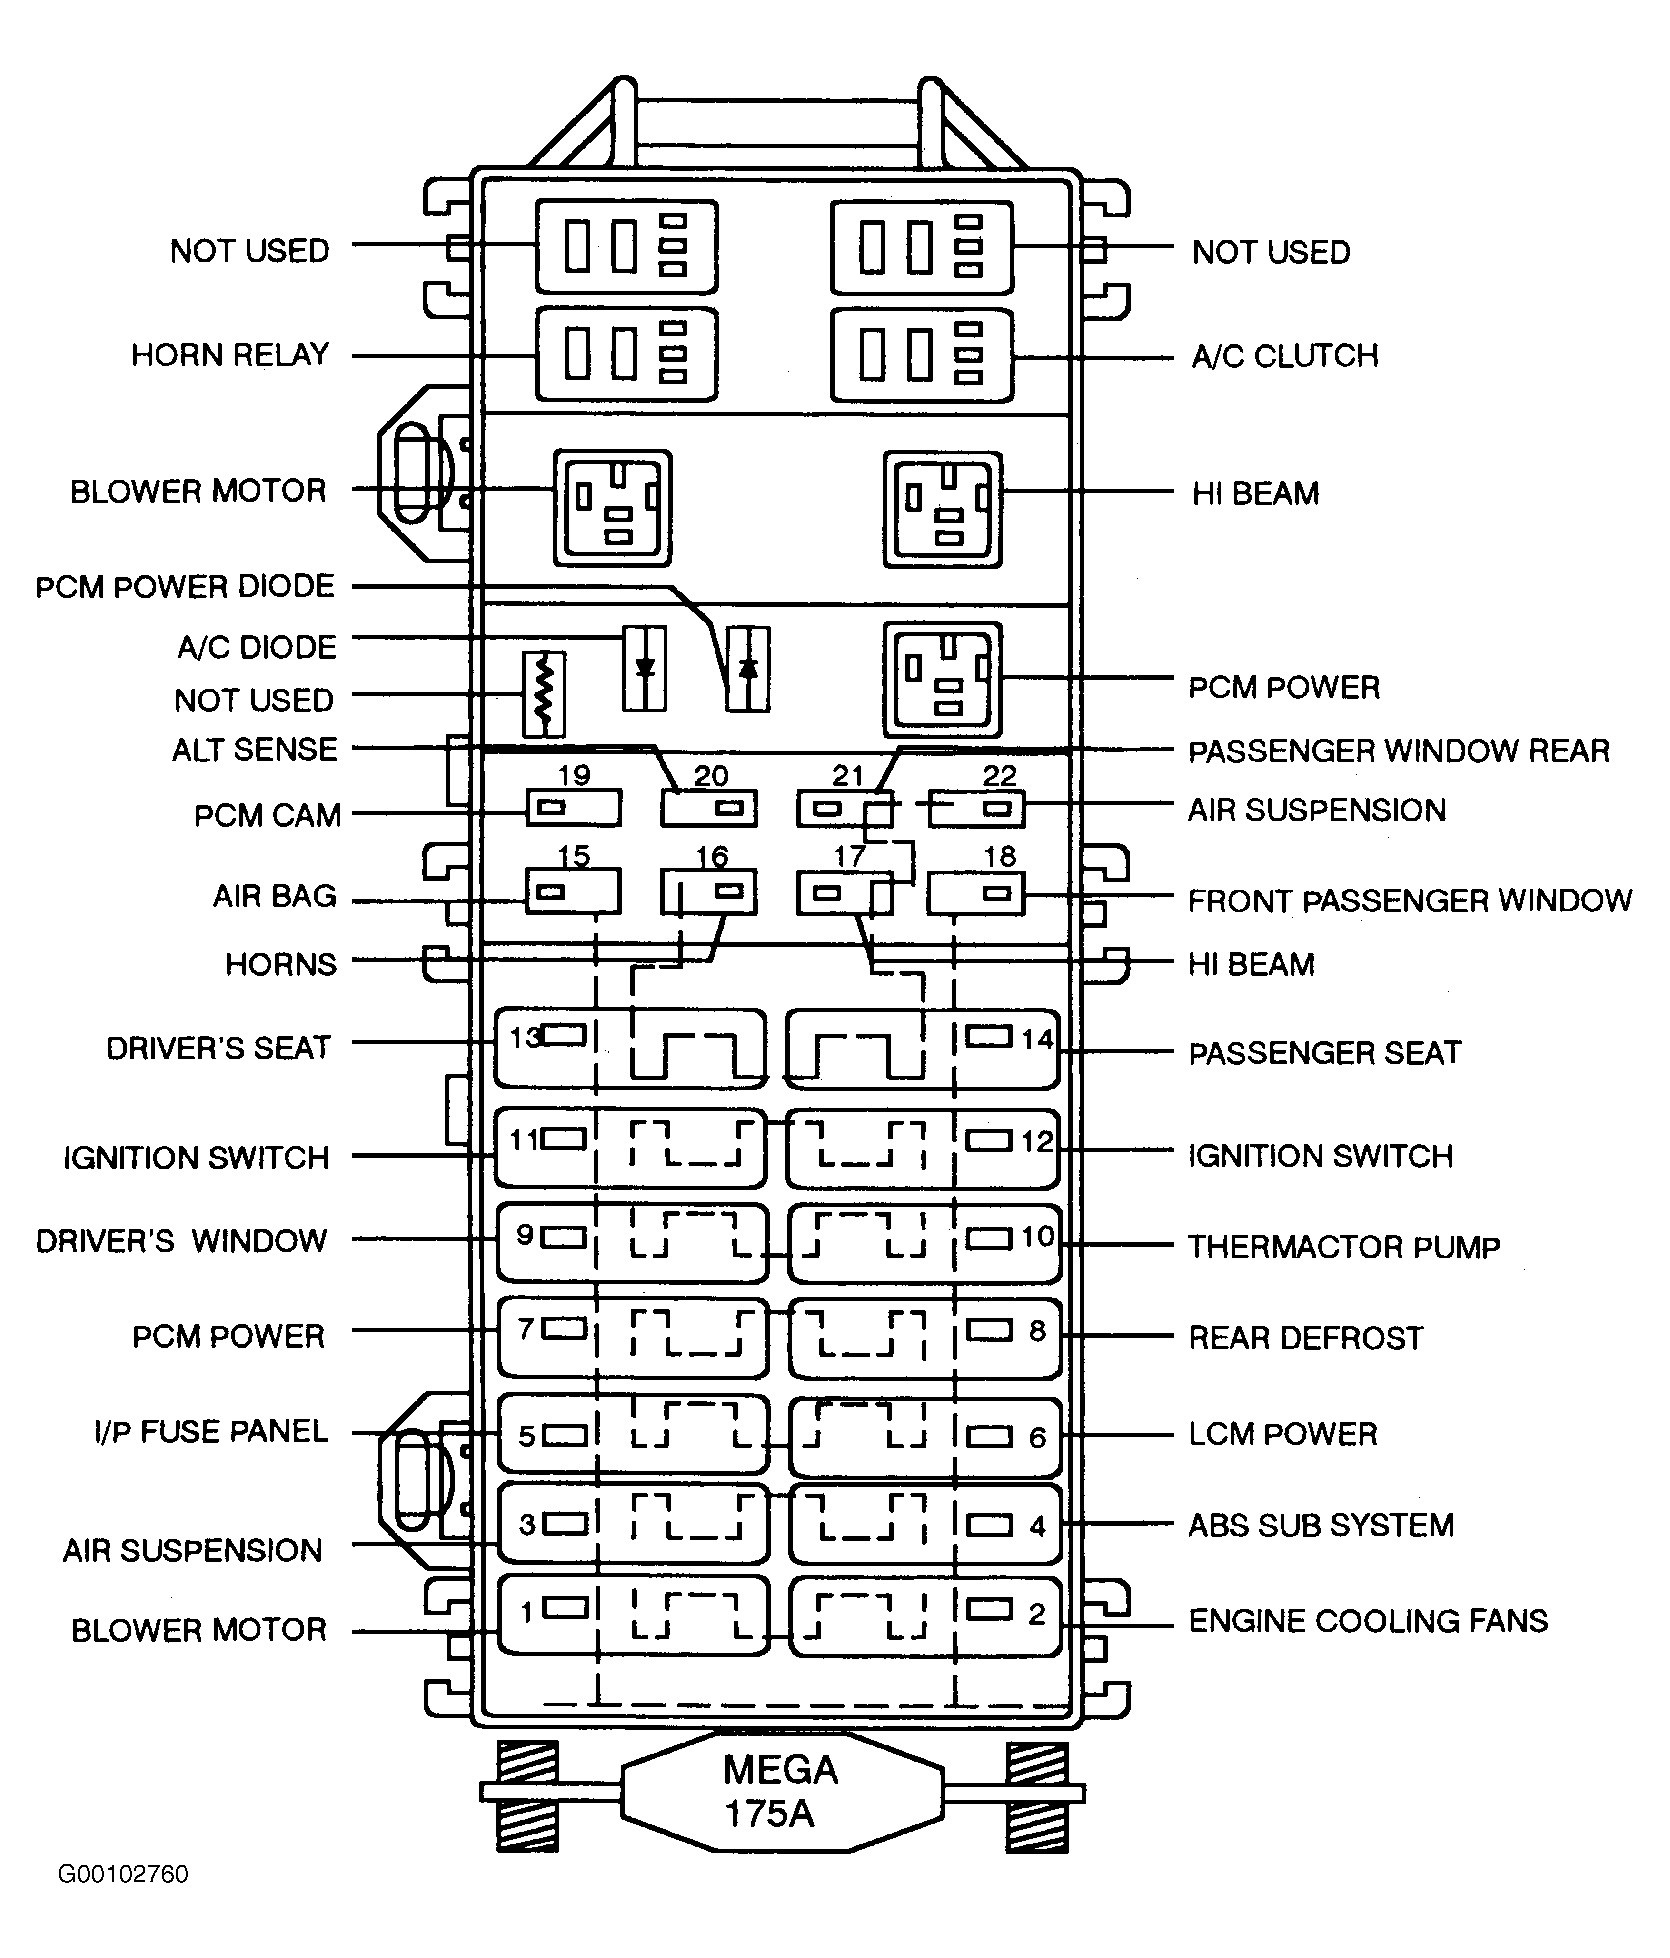 2001 lincoln continental fuse diagram wiring diagrams for 1997 lincoln continental fuse box layout 1997 lincoln continental fuse box diagram [ 1670 x 1958 Pixel ]